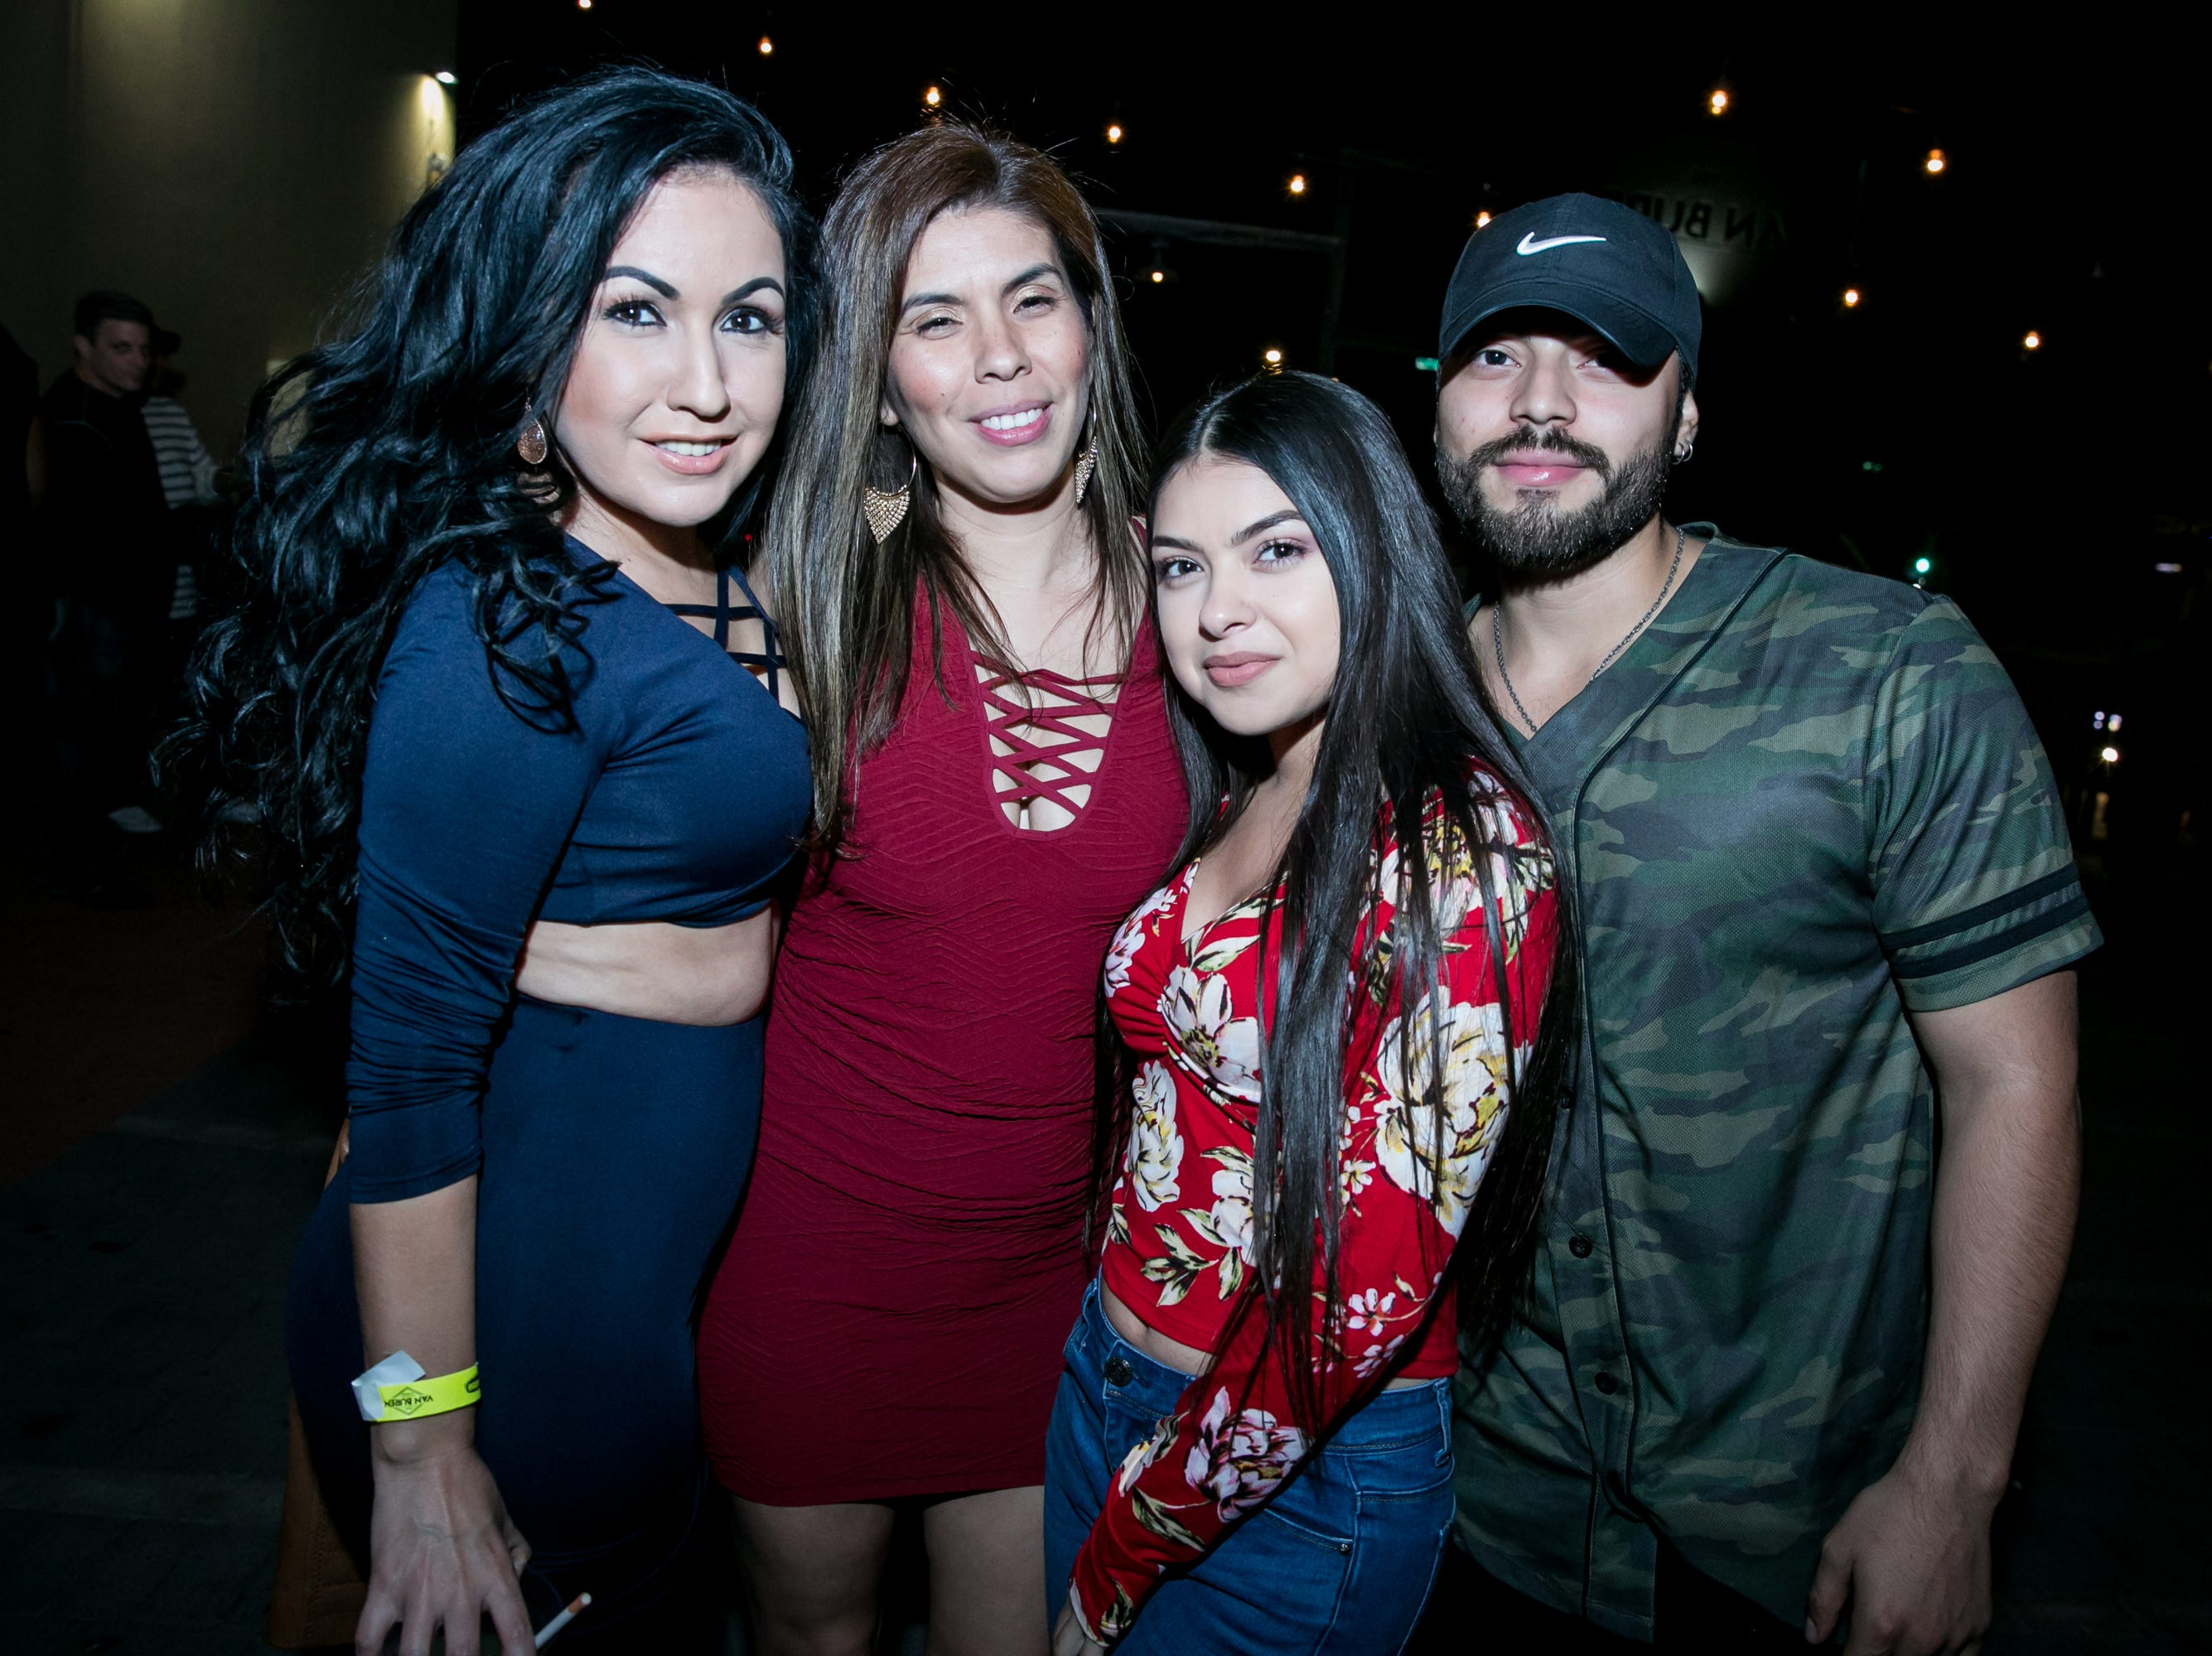 These friends danced the night away during Old School - 90's Hip Hop Dance Party at The Van Buren on Friday, November 30, 2018.